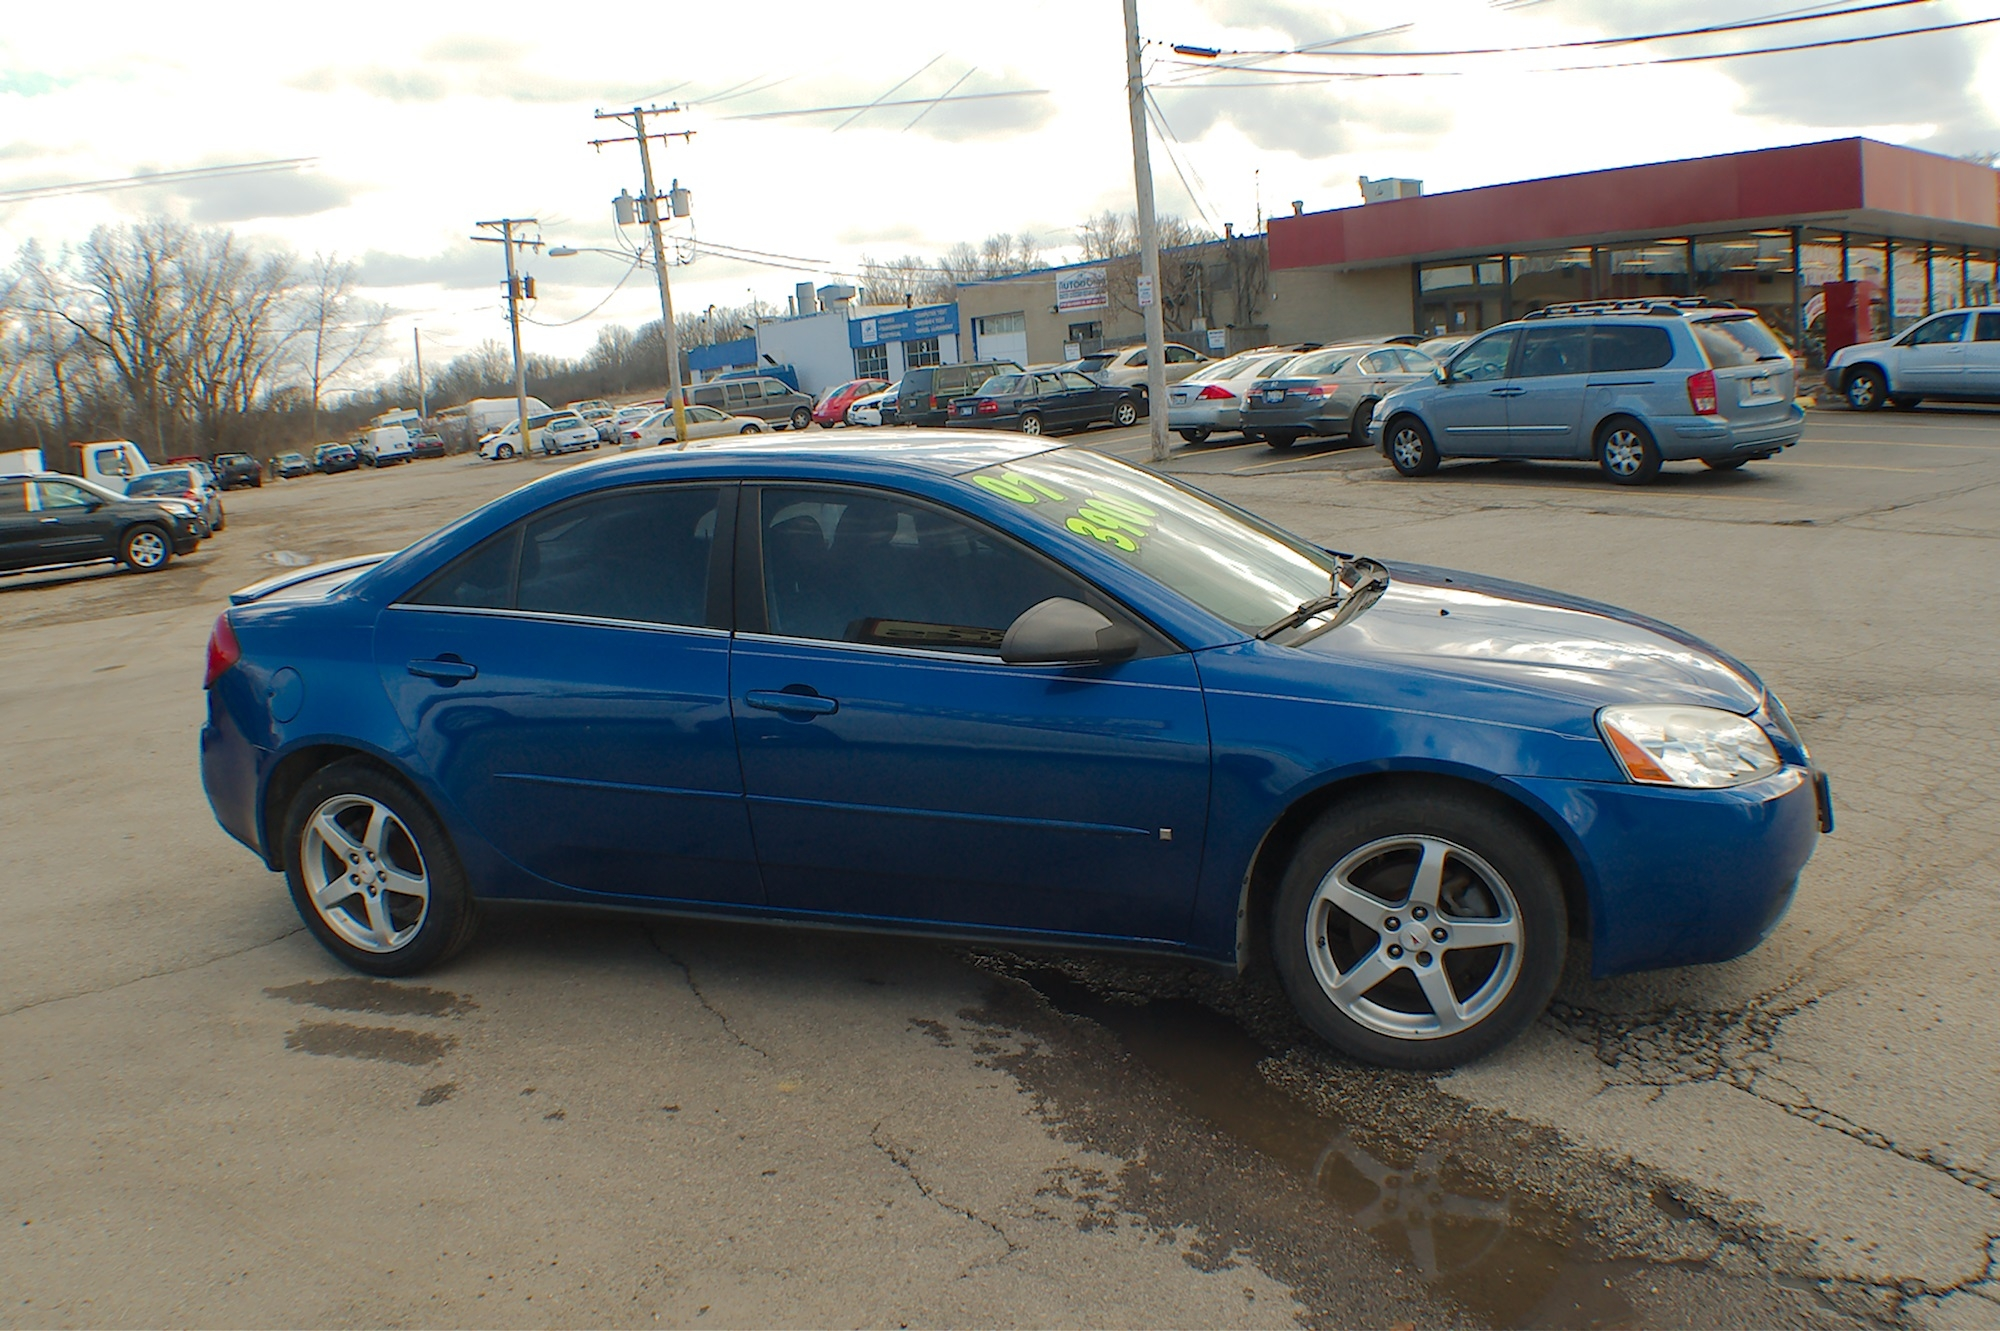 2007 Pontiac G6 Blue Sedan Used Car Sale Bannockburn Barrington Beach Park